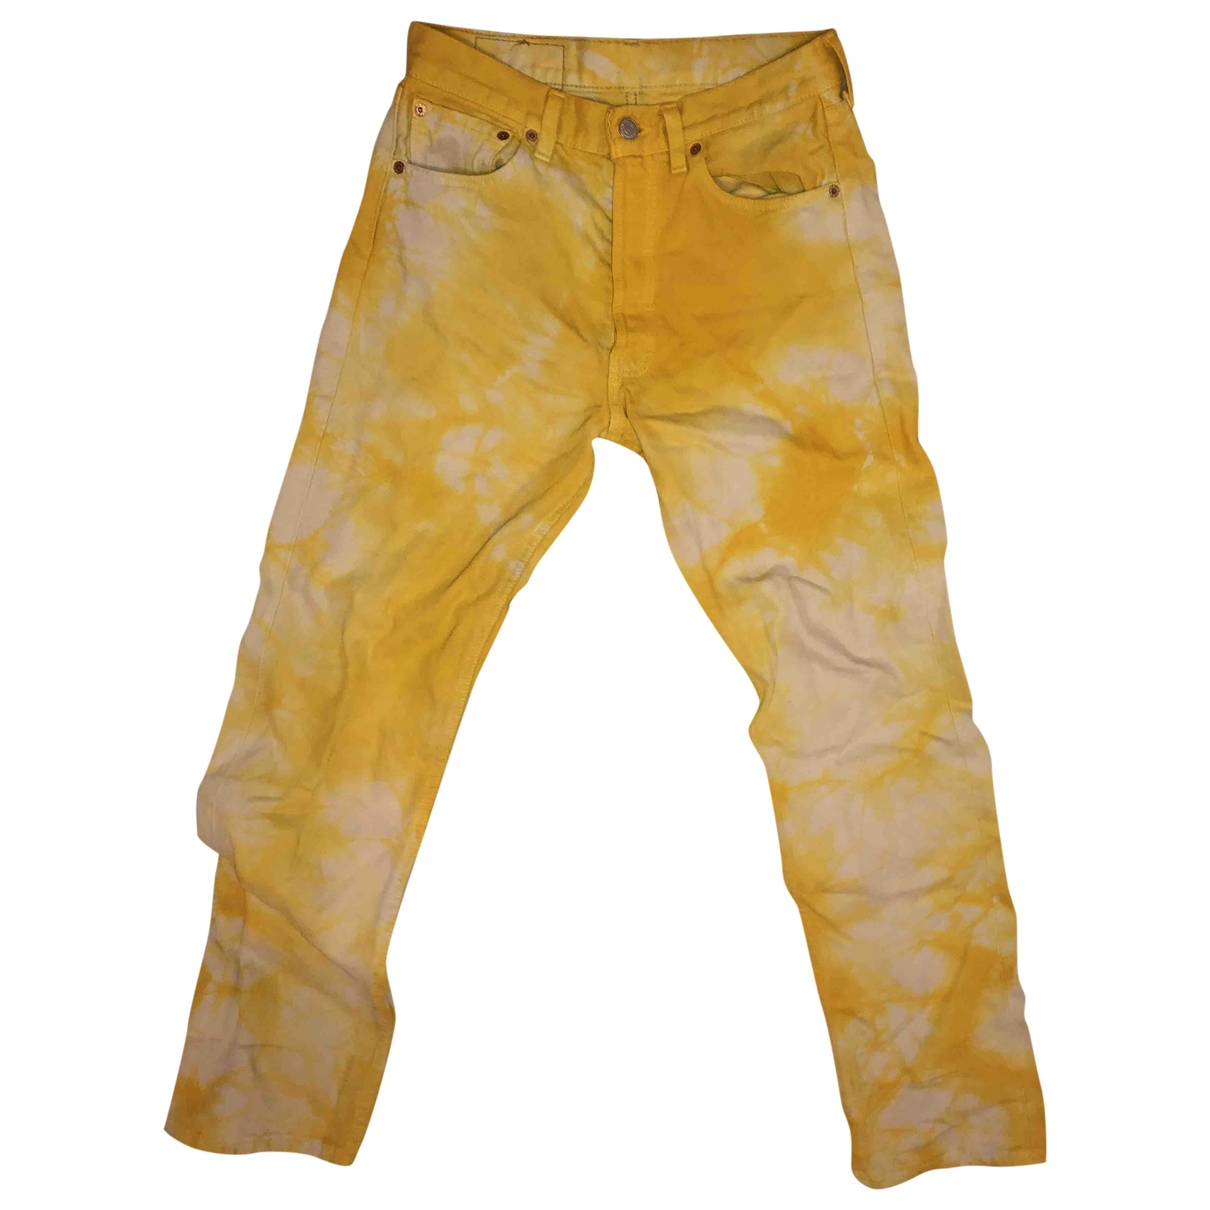 Levi's Vintage Clothing \N Yellow Denim - Jeans Jeans for Women 34 FR